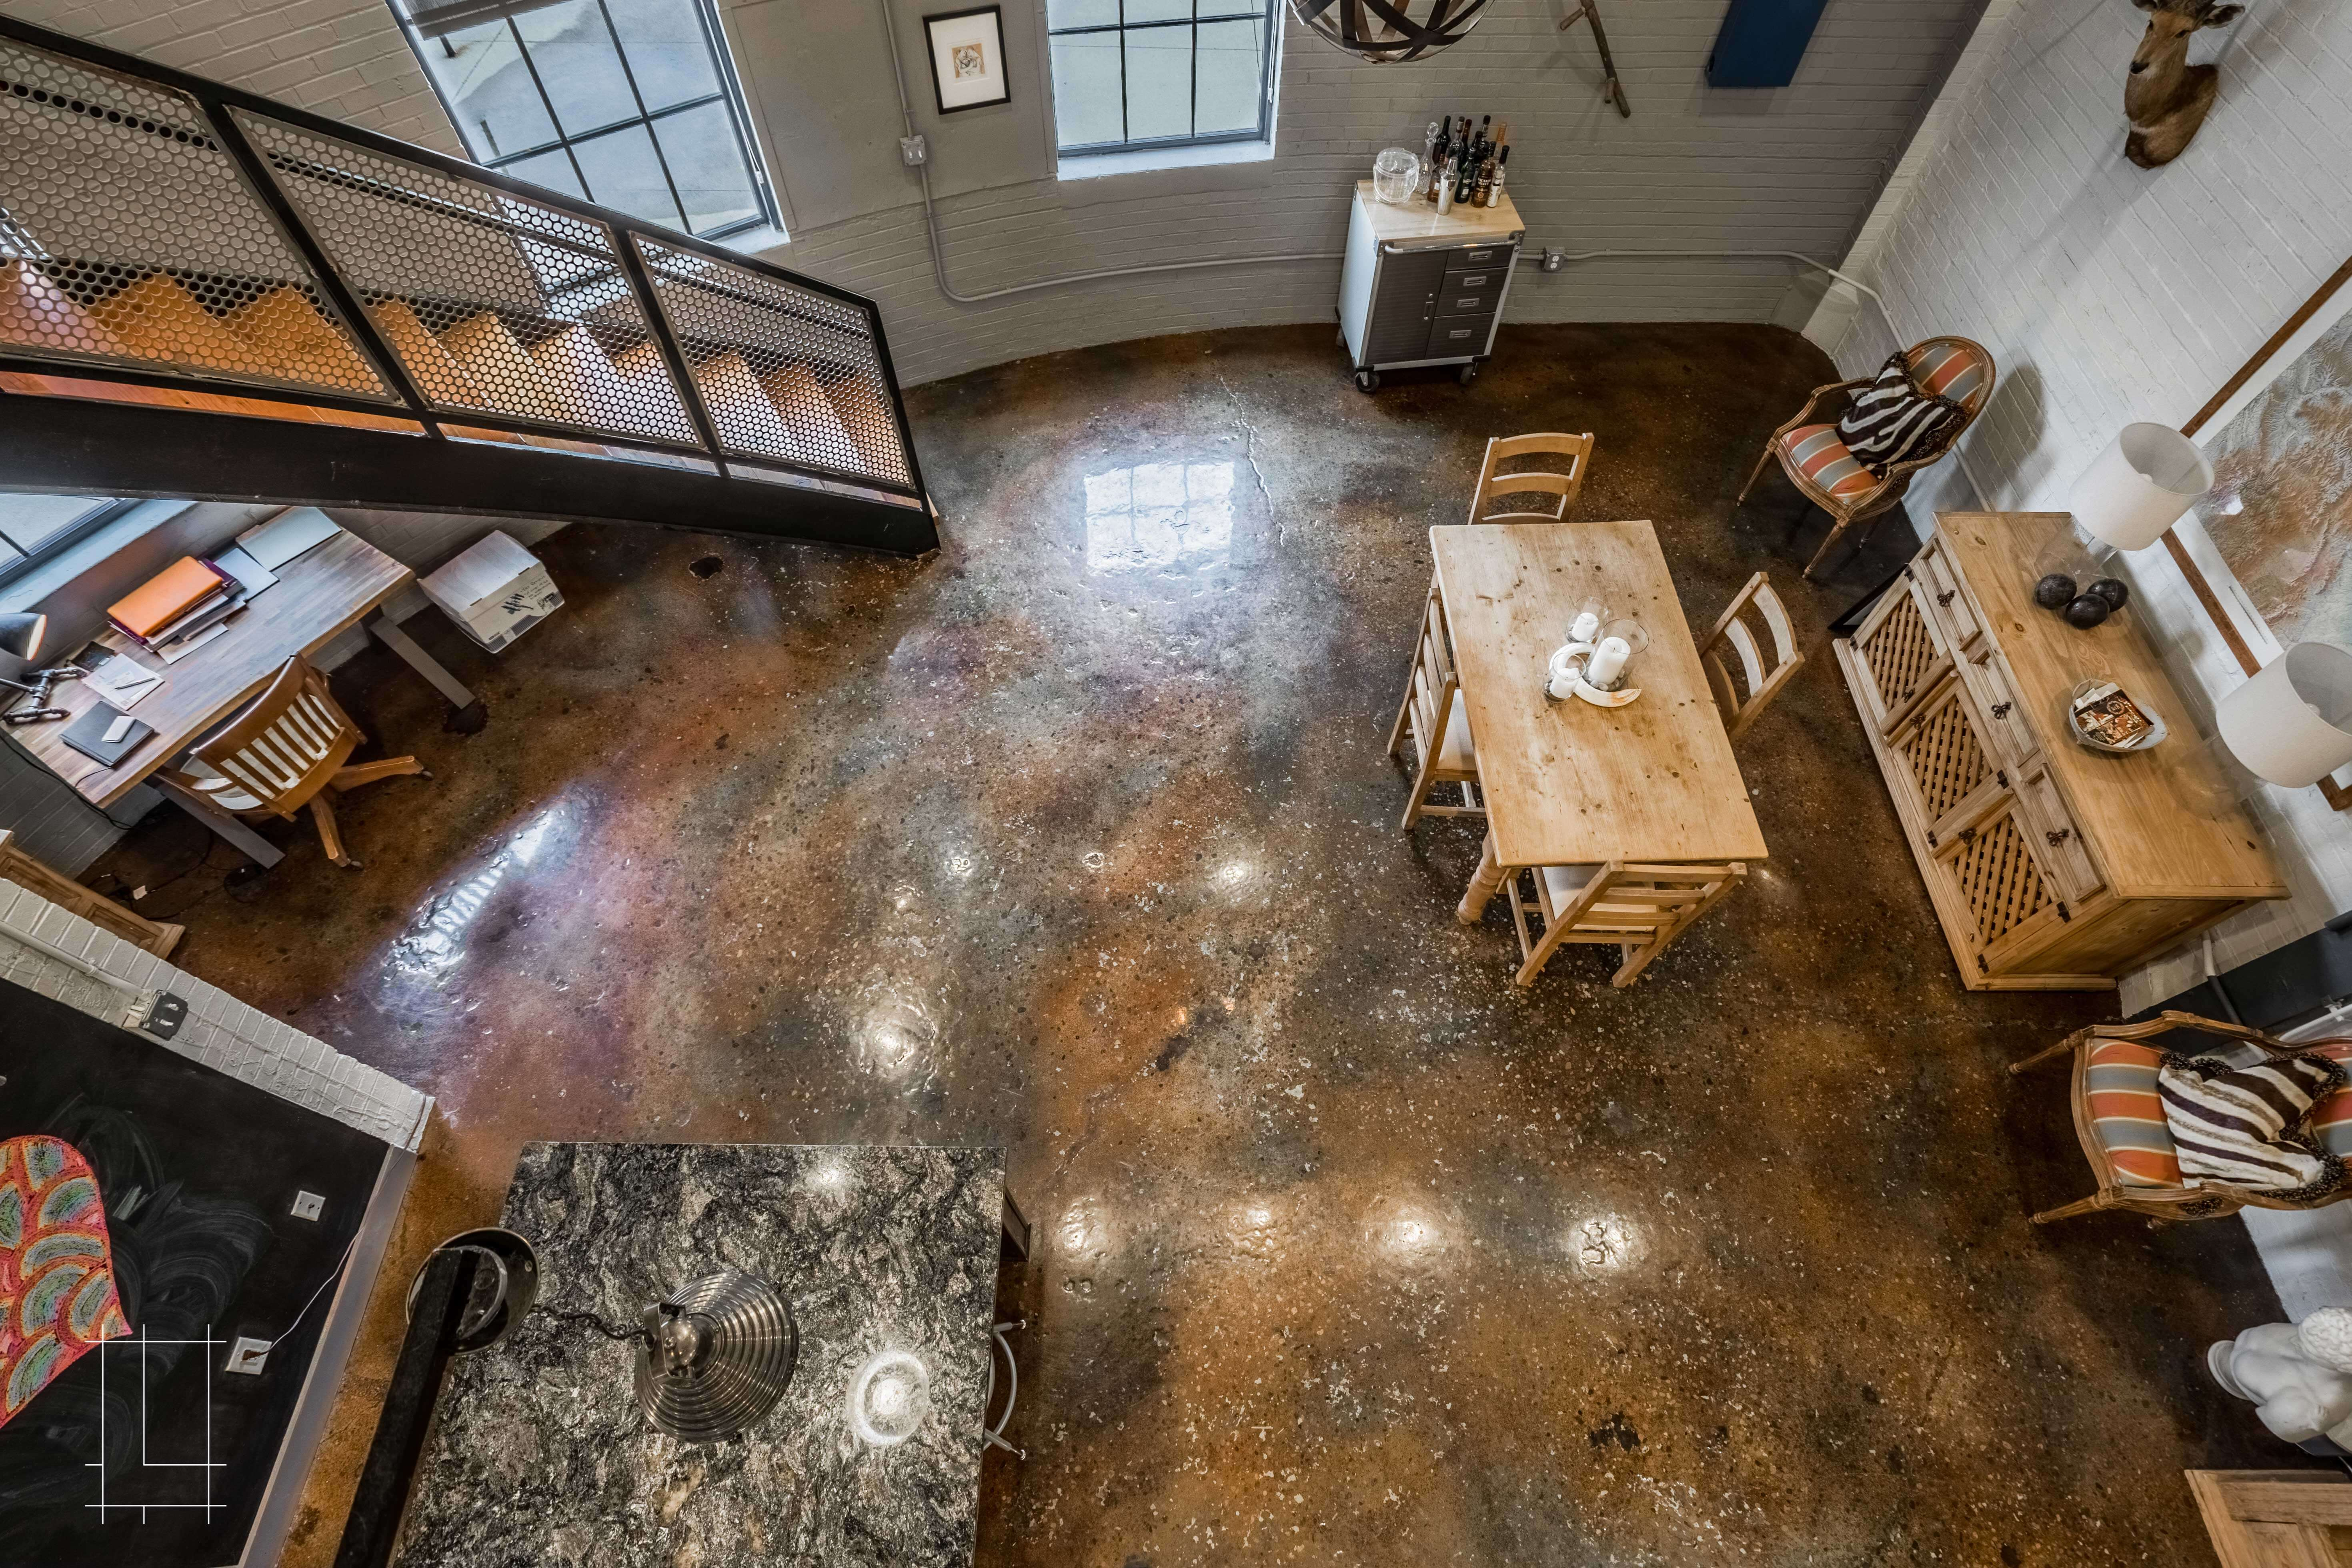 Beautiful Wonder Bread Loft shot in historic factory with hipster style photo. Located in Columbus, Ohio, Lykens Companies serves Columbus, Ohio's urban core with an eye toward historical preservation and restoration. We are deeply involved in the Short North, Victorian Village, Italian Village, Olde Towne East, and Weiland Park communities. We are a landlord, property management, and property development company. We create the best Short North apartments and rentals: Short North Apartment Rentals and Apartments, Wonder Bread, houses for rent in Columbus, Ohio, Downtown apartments and Downtown Columbus rentals and apartments. For rent!